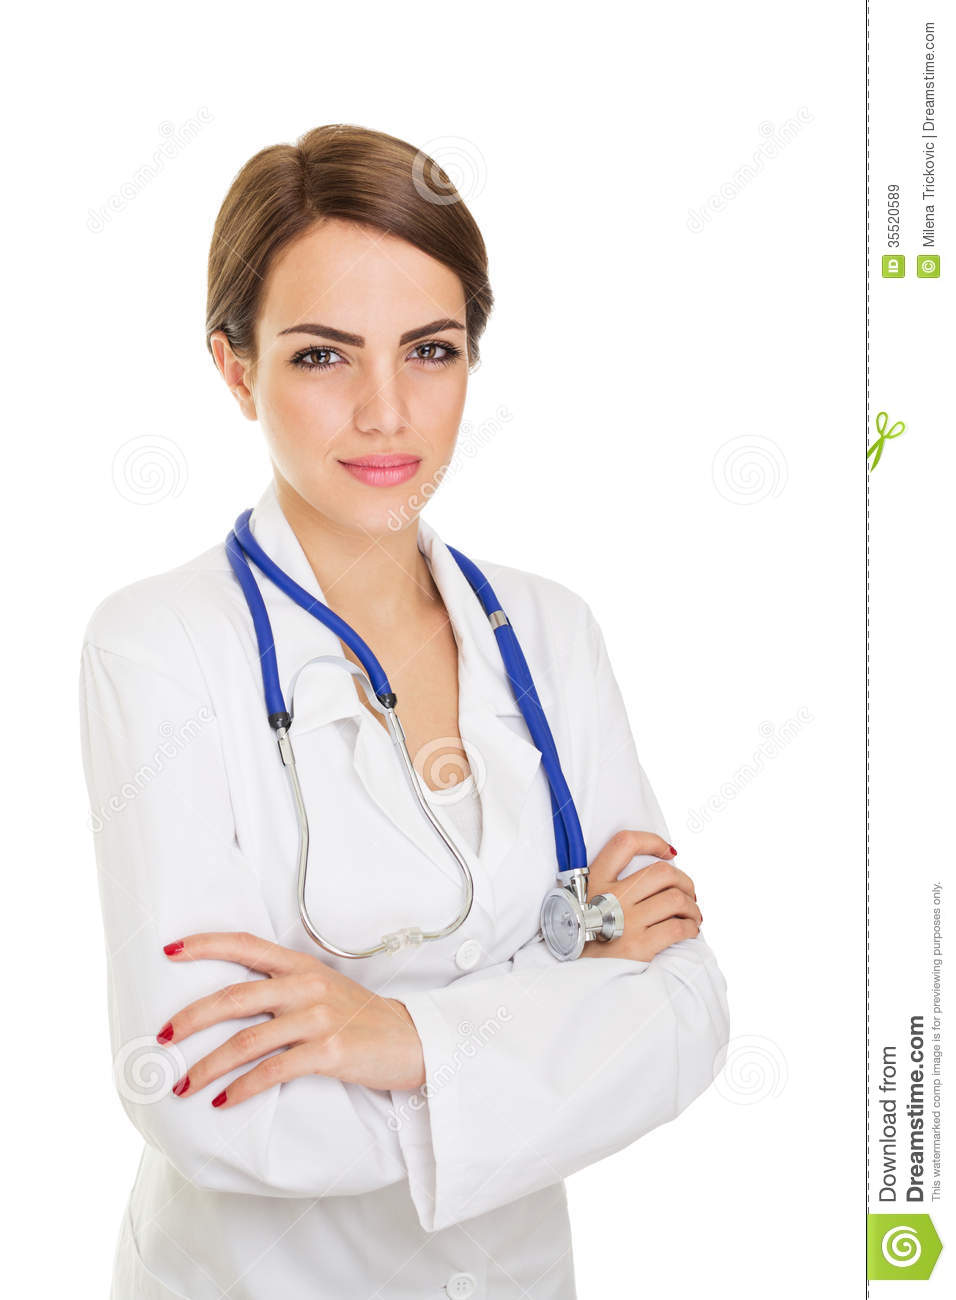 Confident young beautiful caucasian female doctor wearing white coat